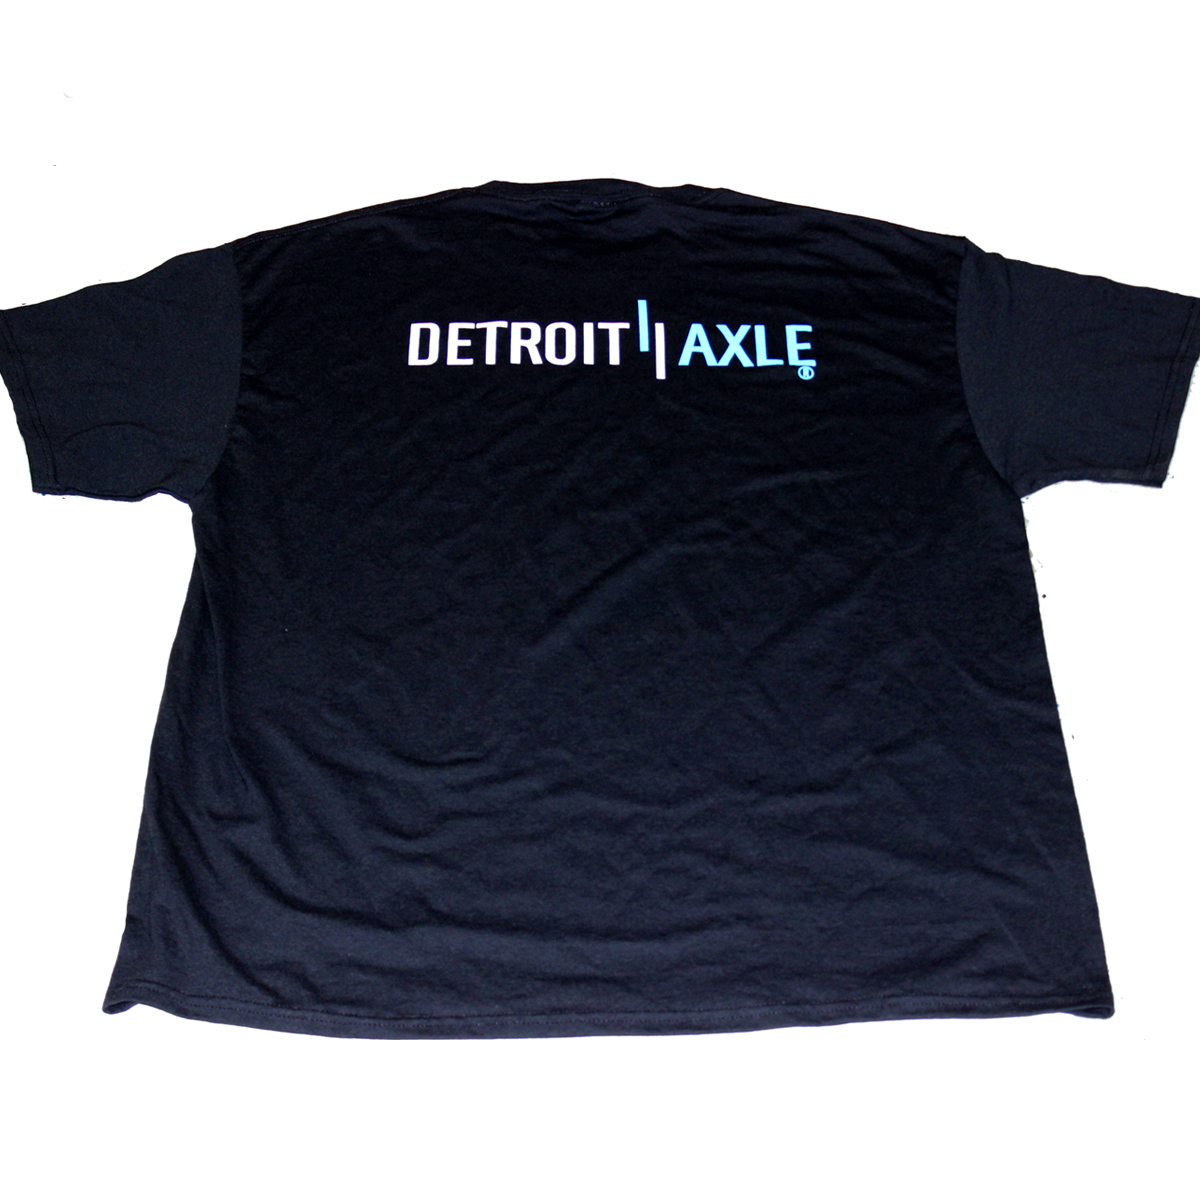 Detroit Axle T-Shirt